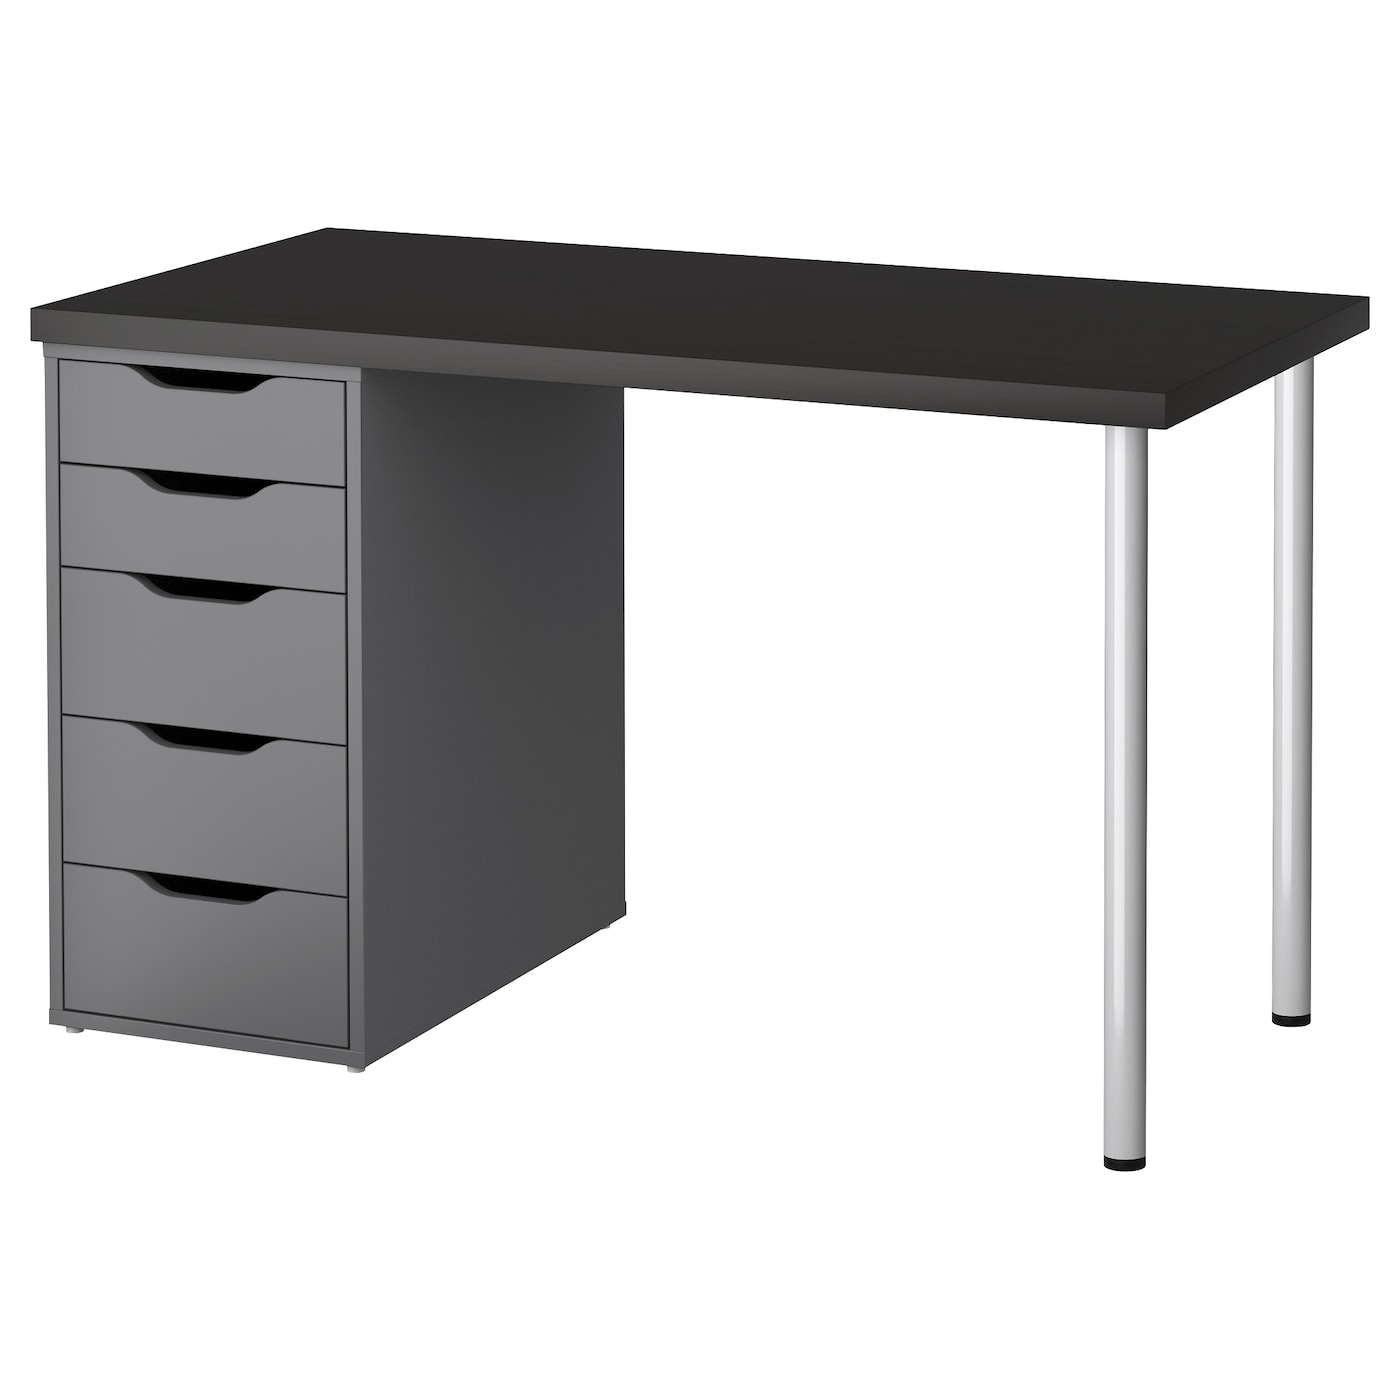 Alex linnmon table black brown grey 120 x 60 cm ikea for Ikea desk black